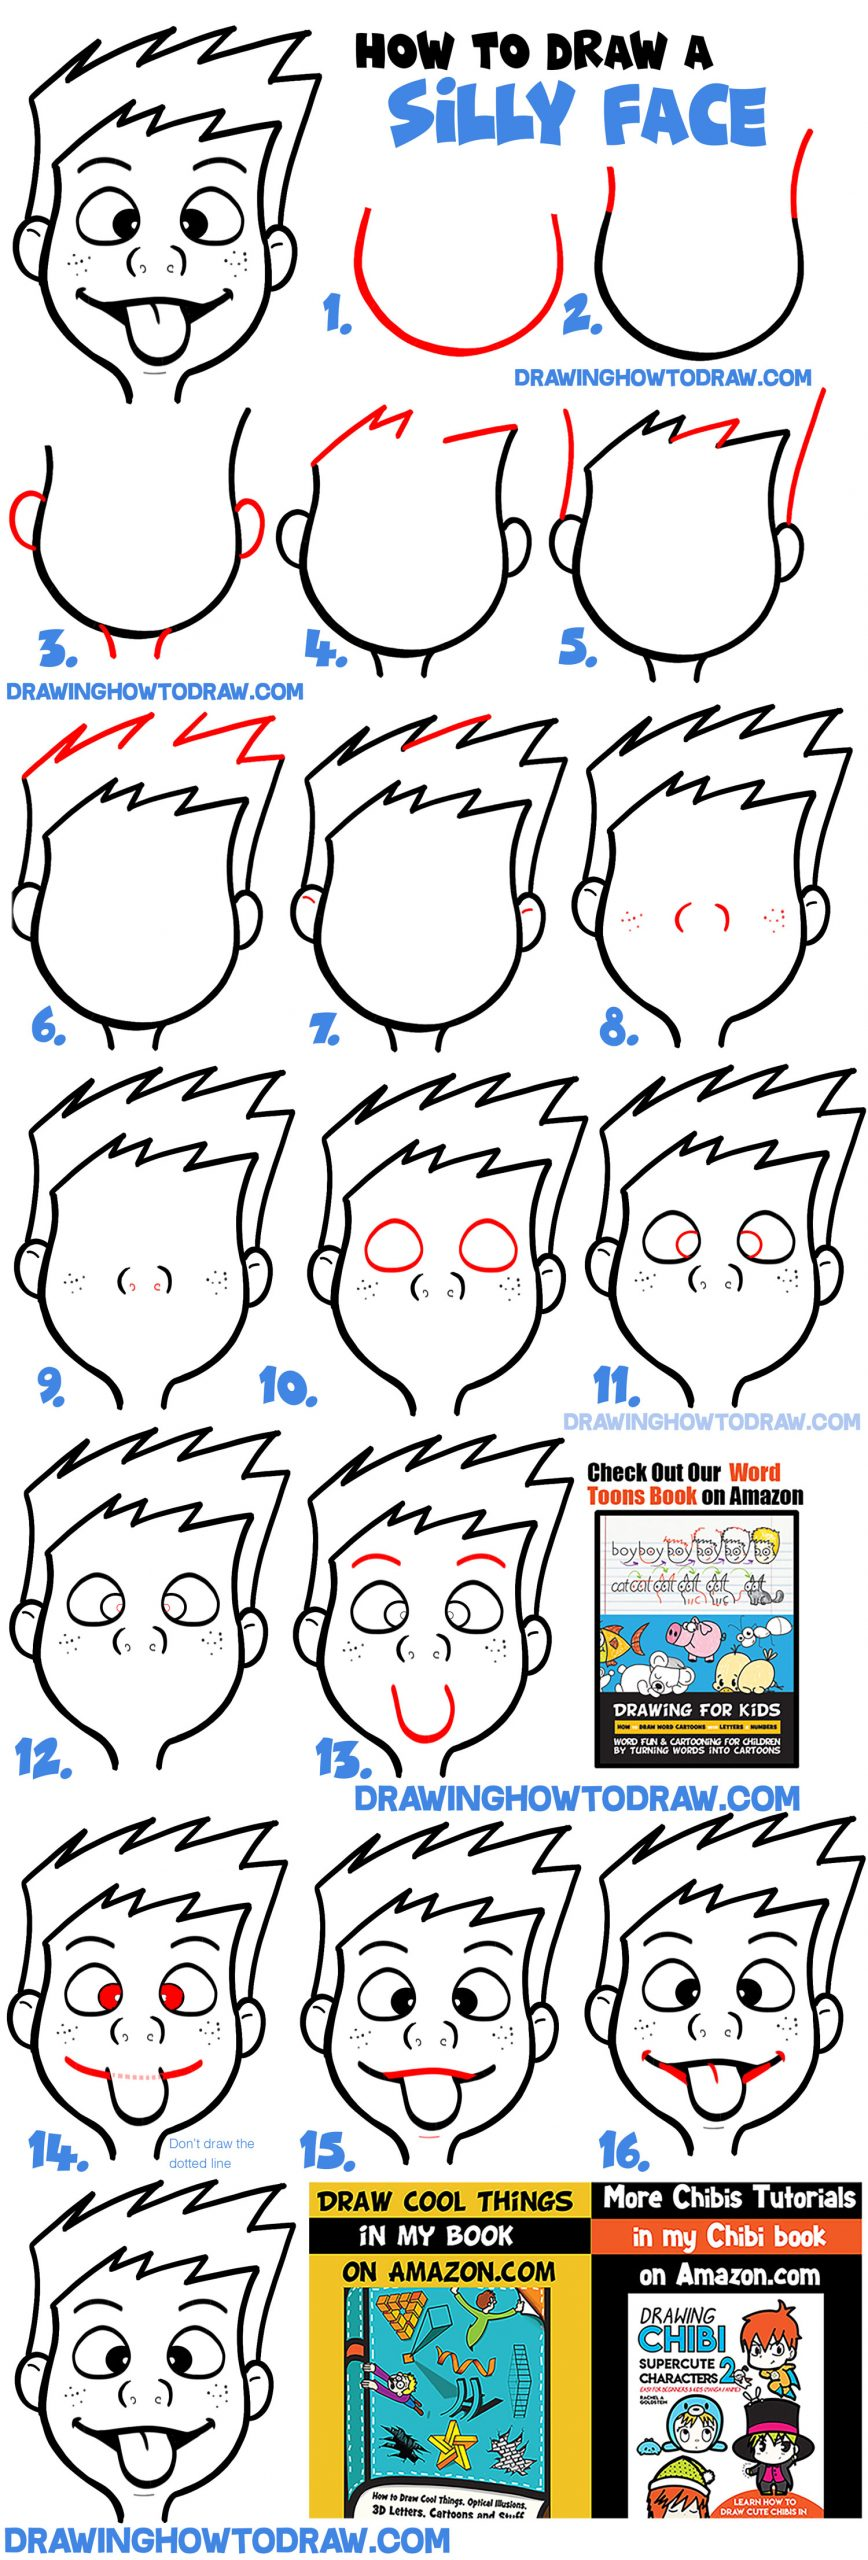 How to draw a cute cartoon boy or girl sticking tongue out